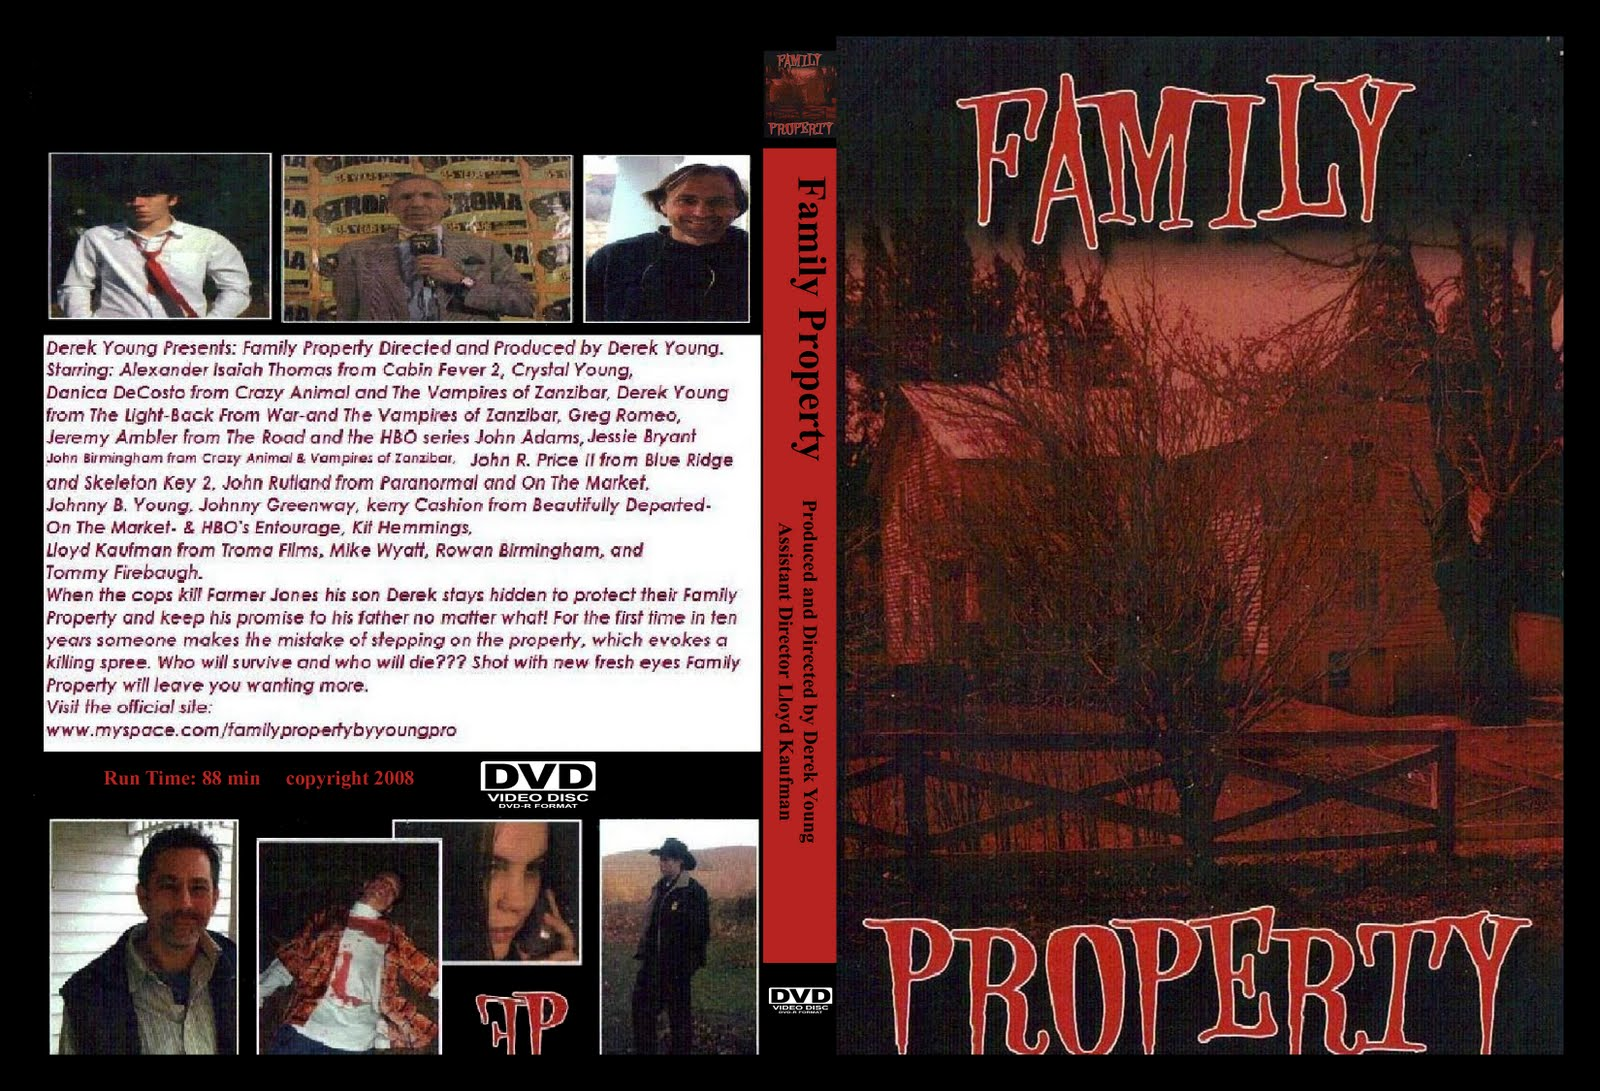 Family Property featuring Lloyd Kaufman